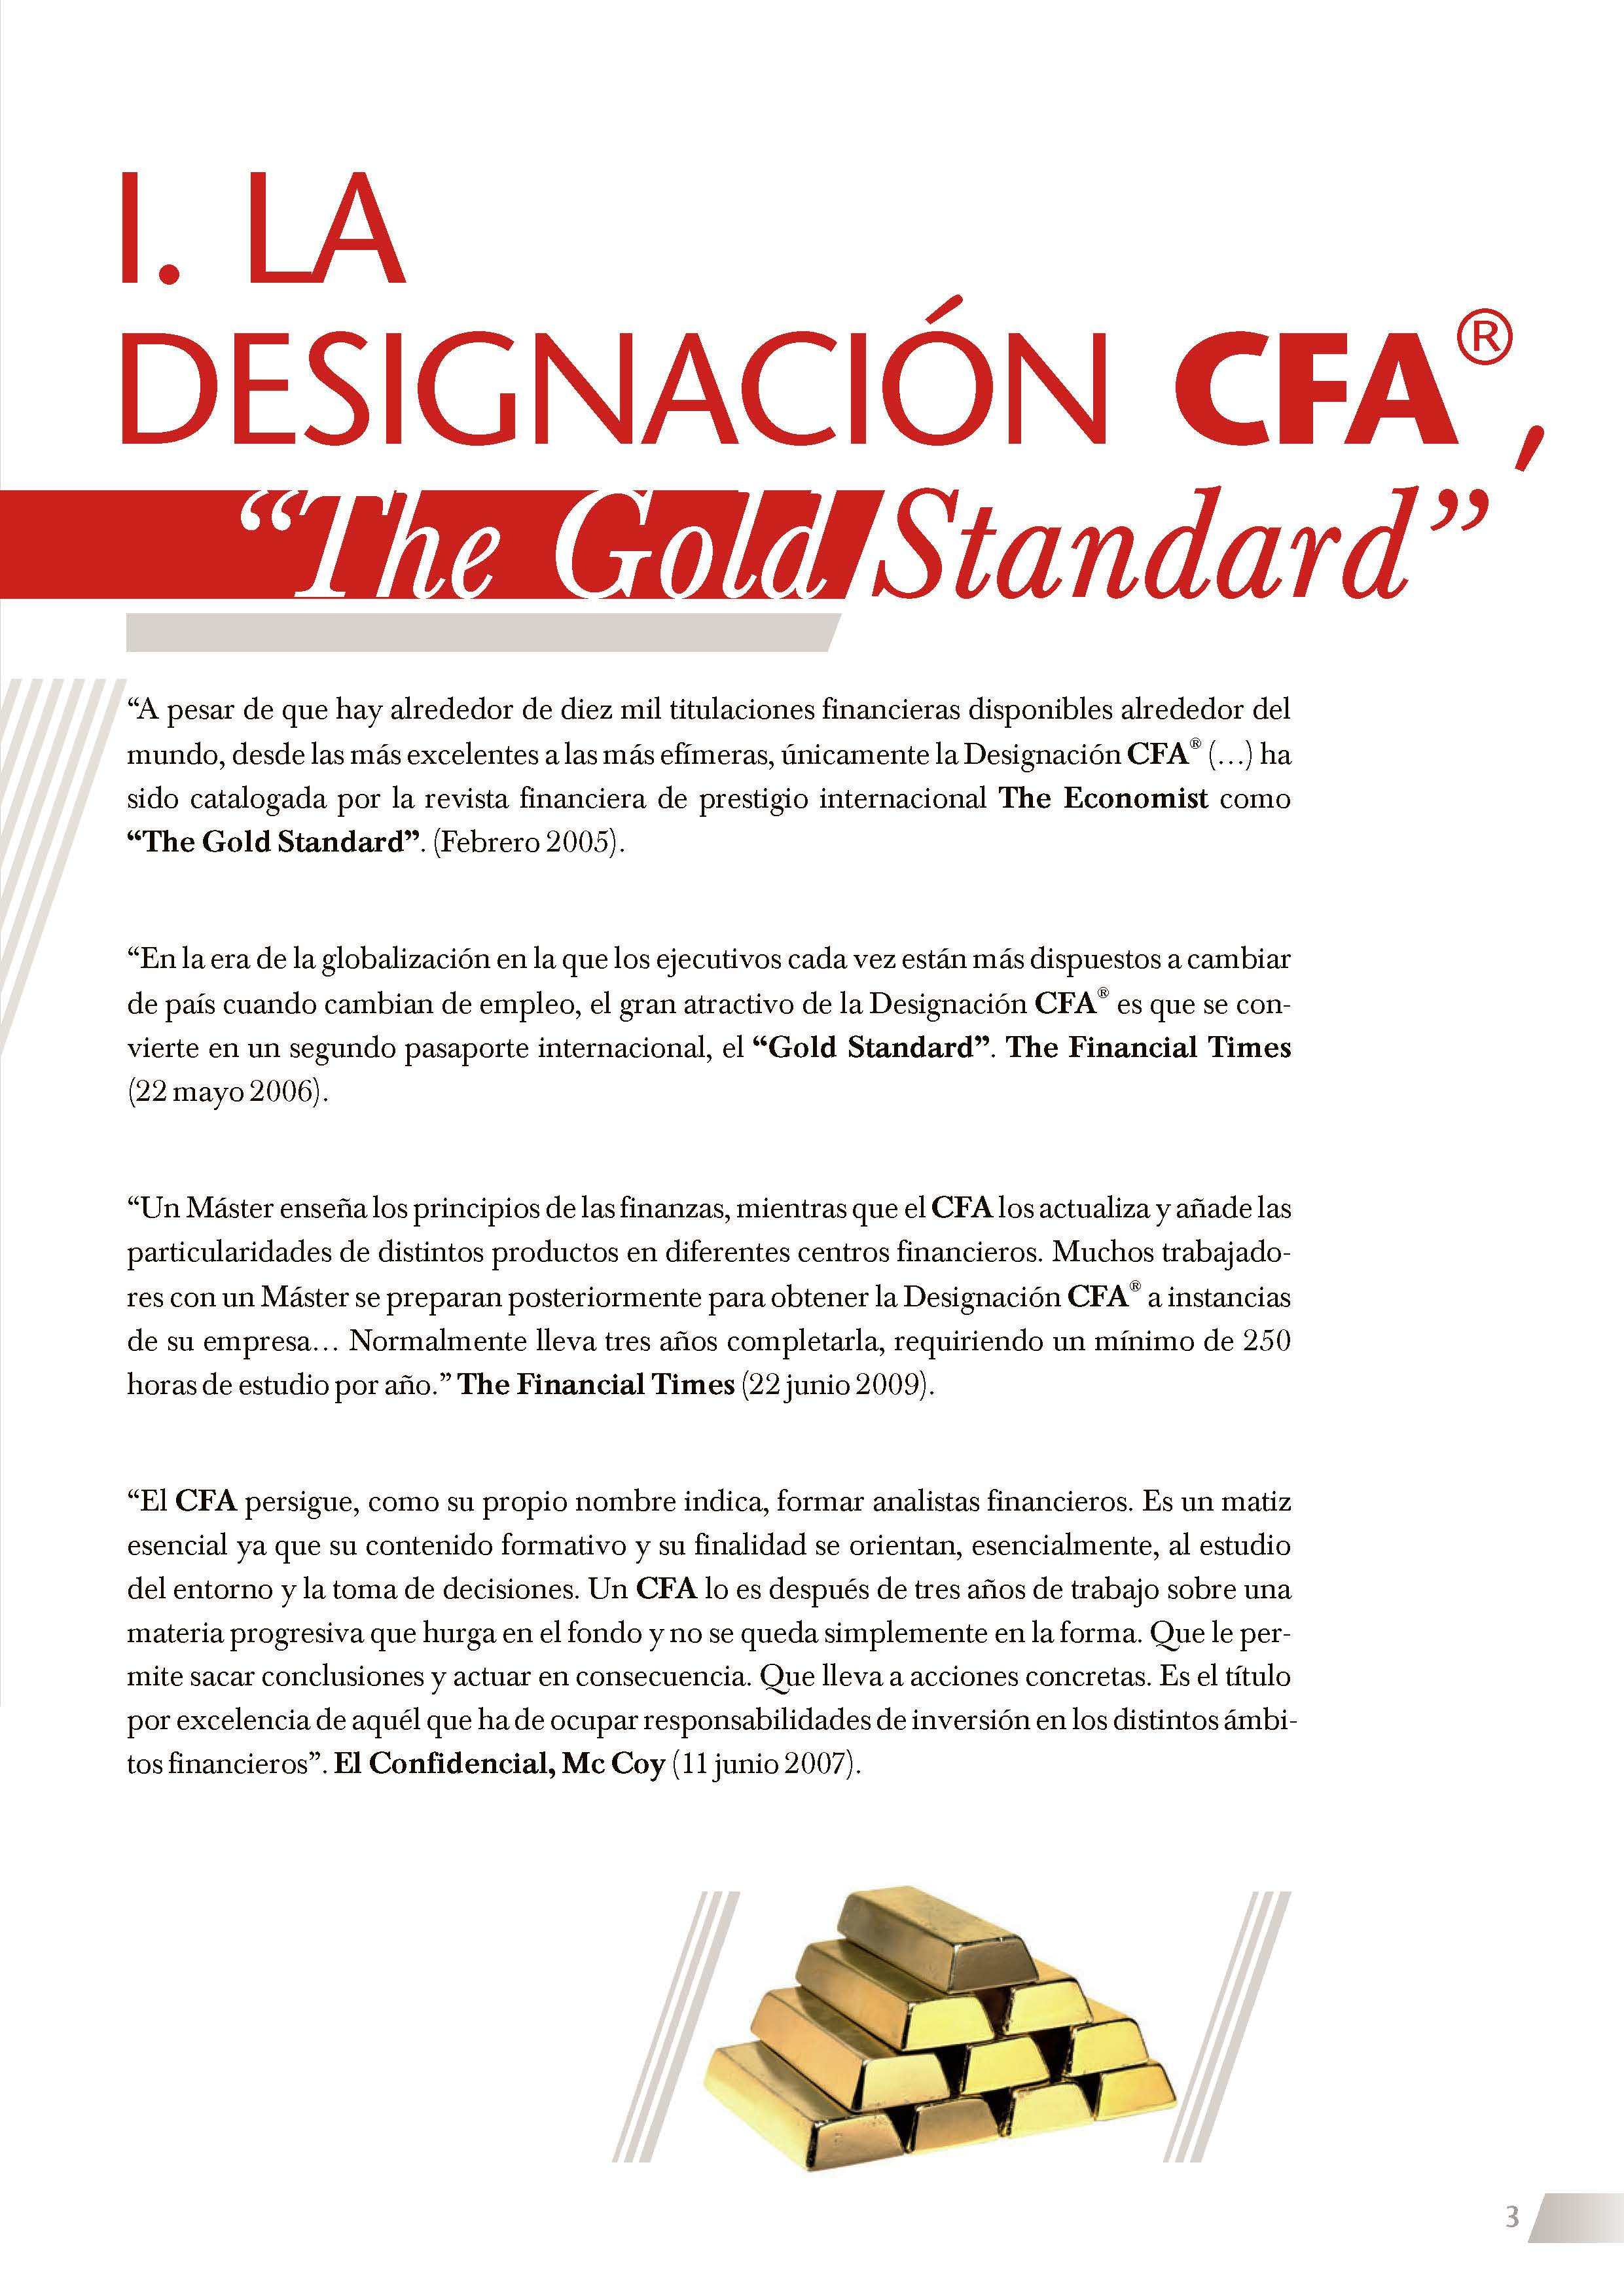 Folleto_Designación_CFA_(3).jpg